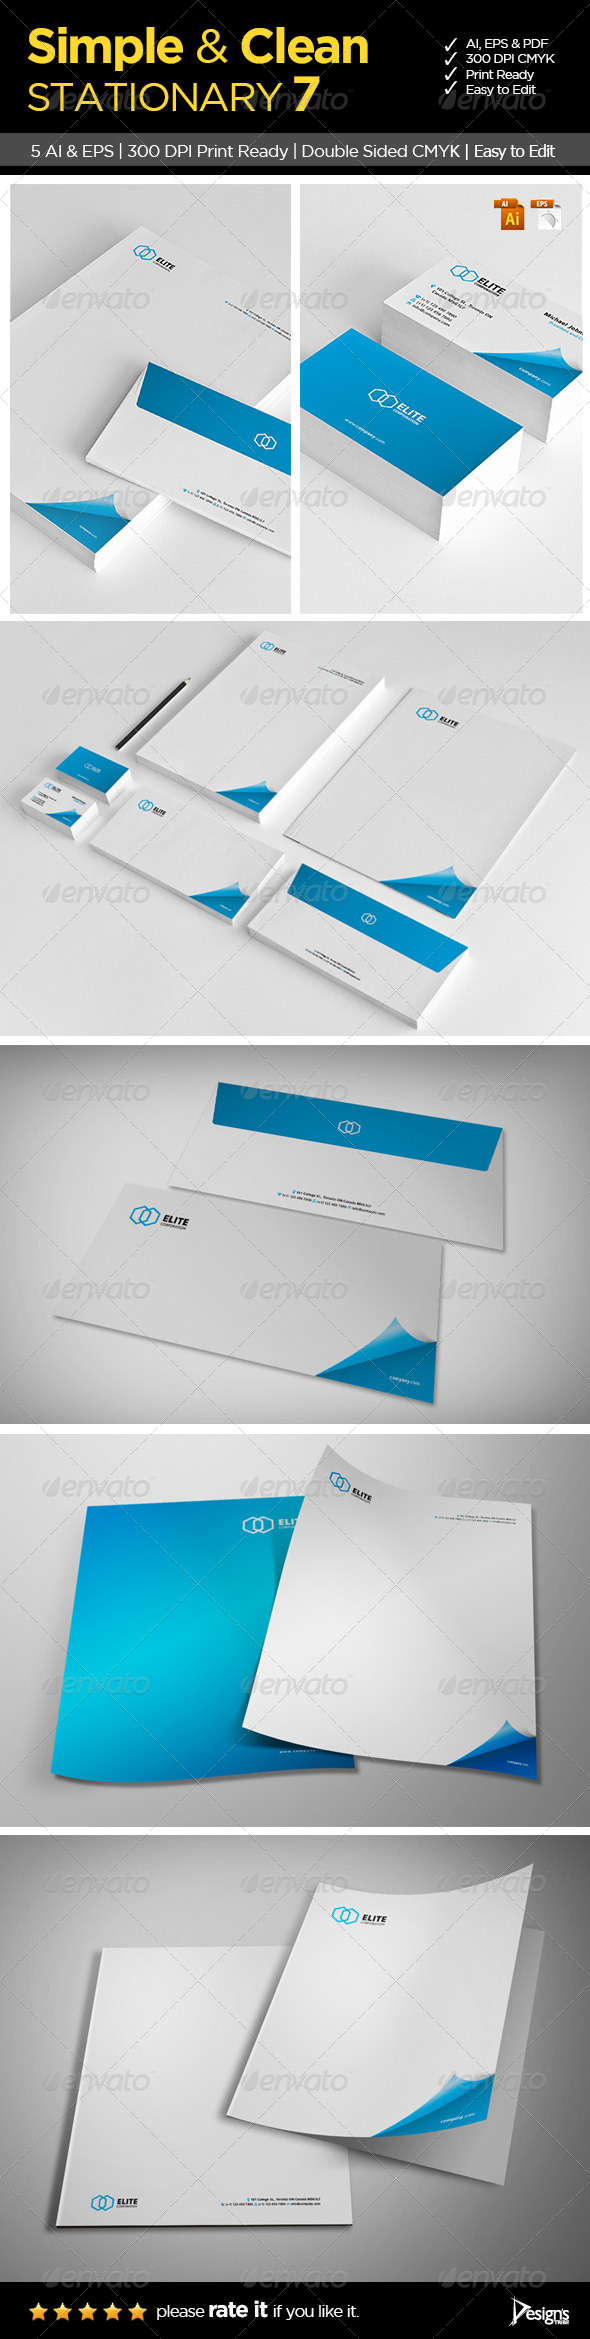 Simple and Clean Stationary 7 - Stationery Print Templates